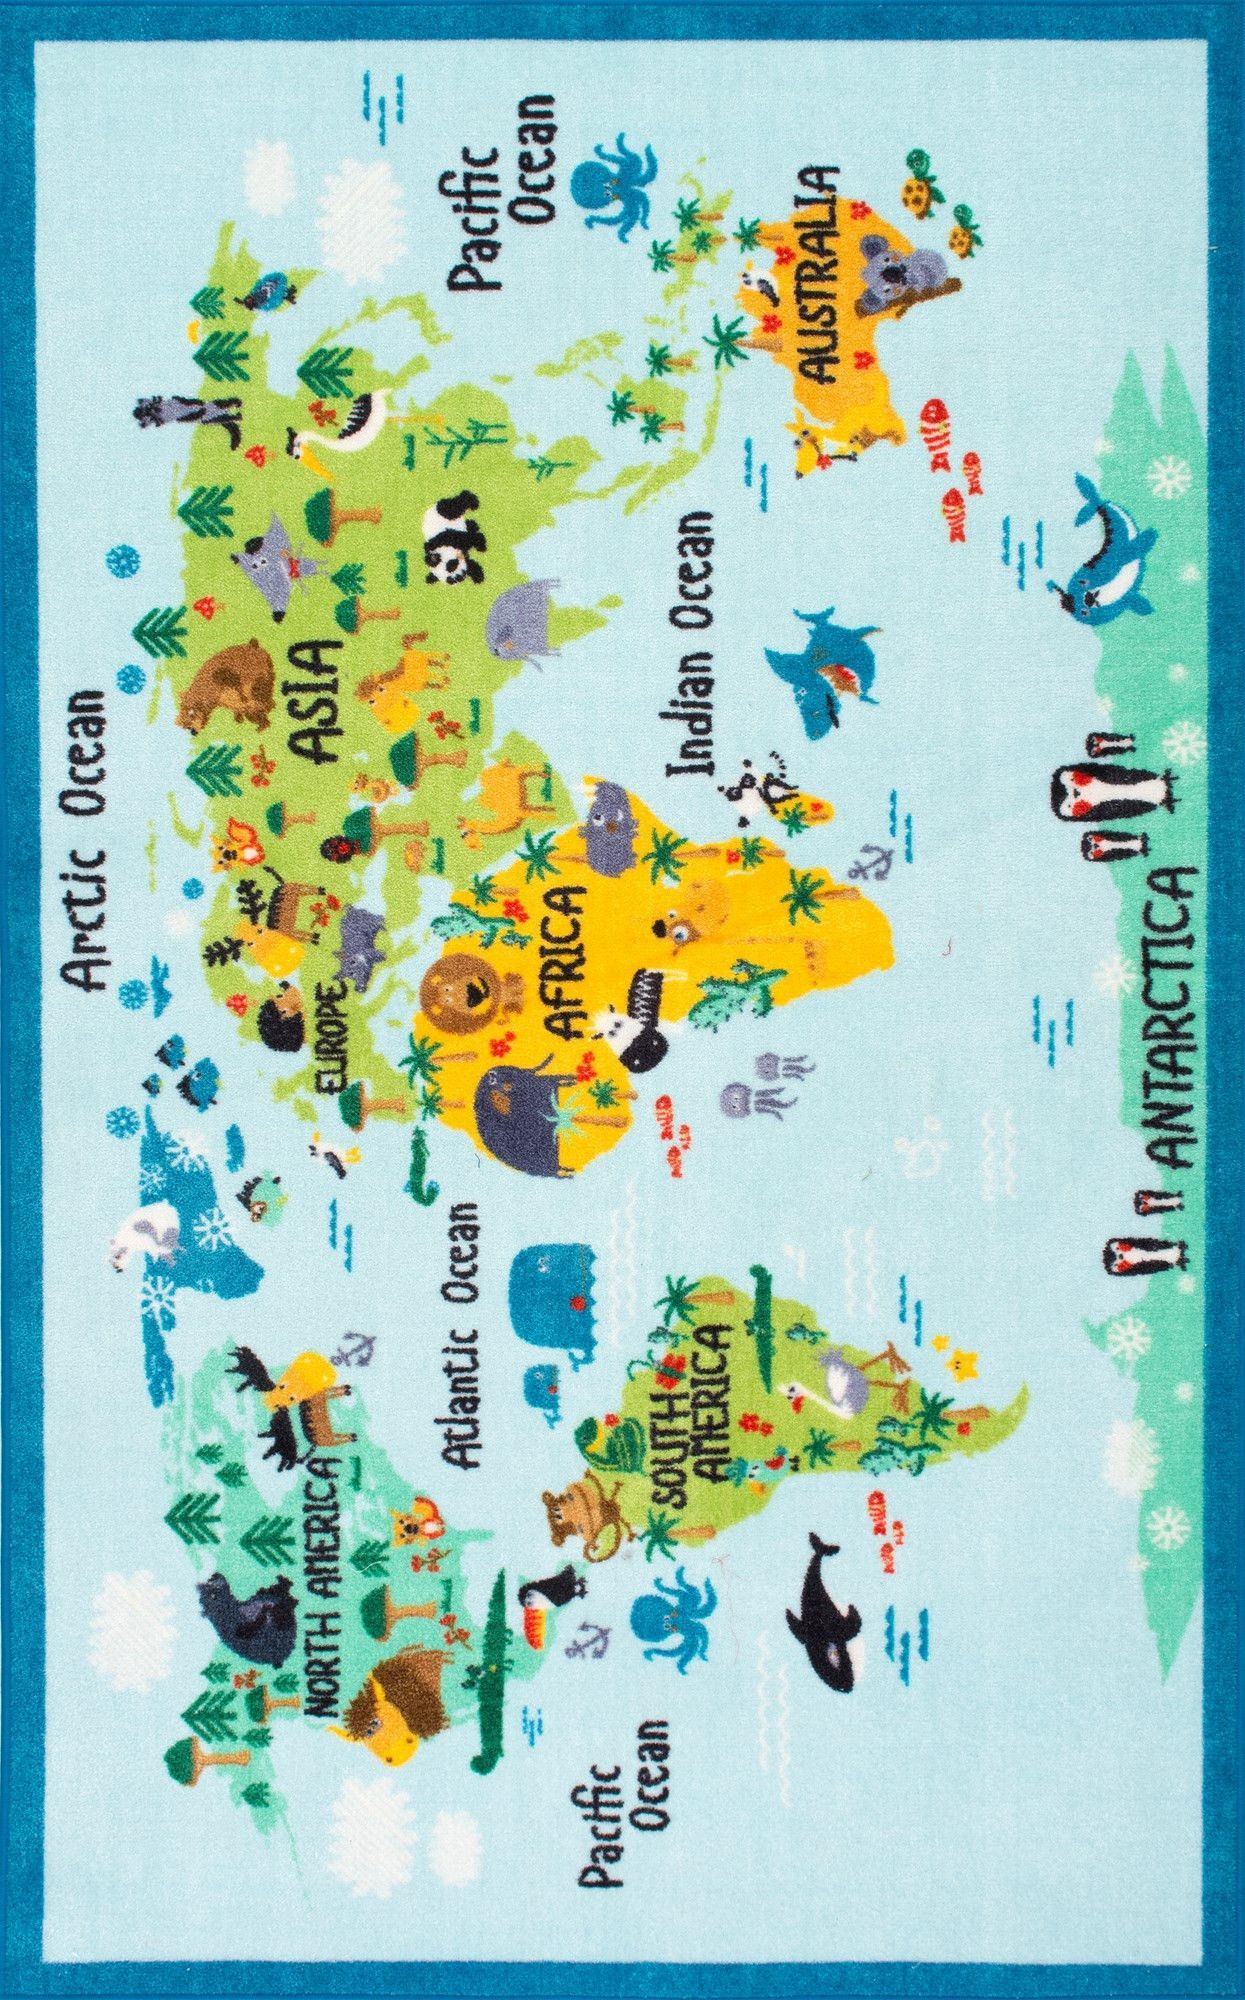 Animal world map environmental science and activities animal world map gumiabroncs Image collections